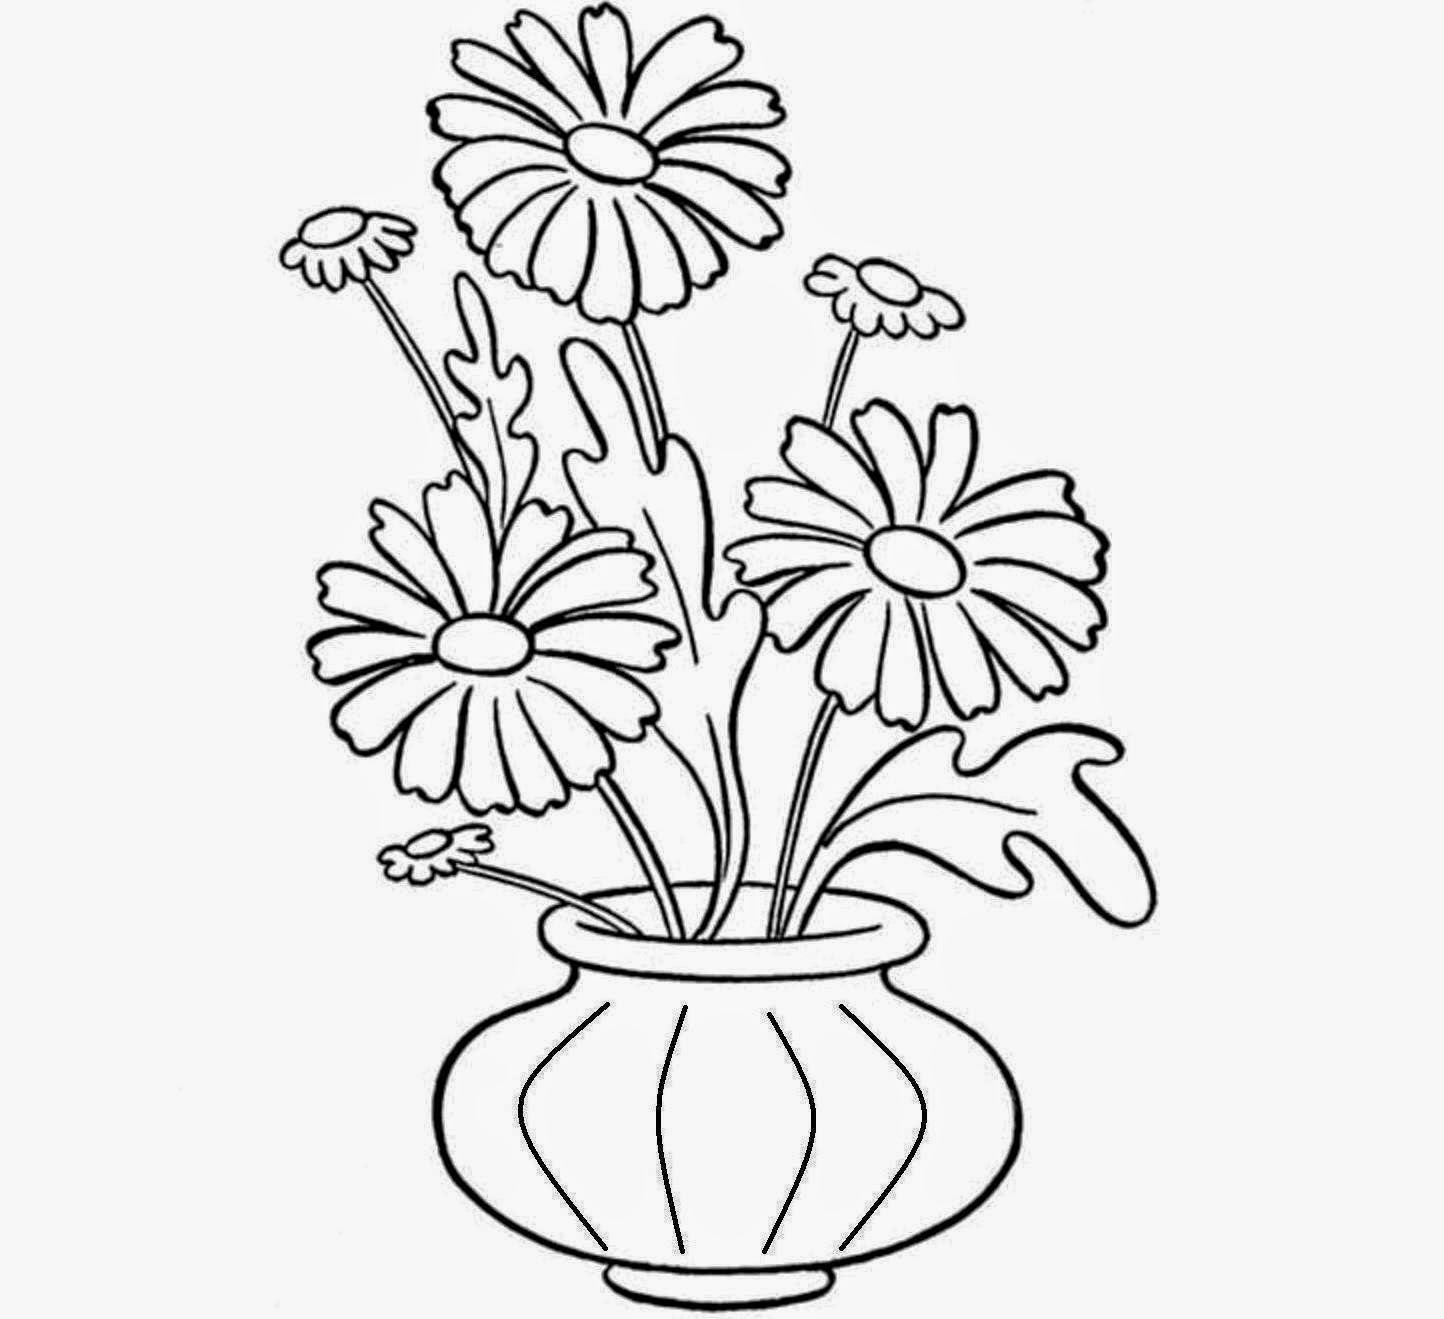 Easy To Draw Flowers In A Vase Flowers Healthy